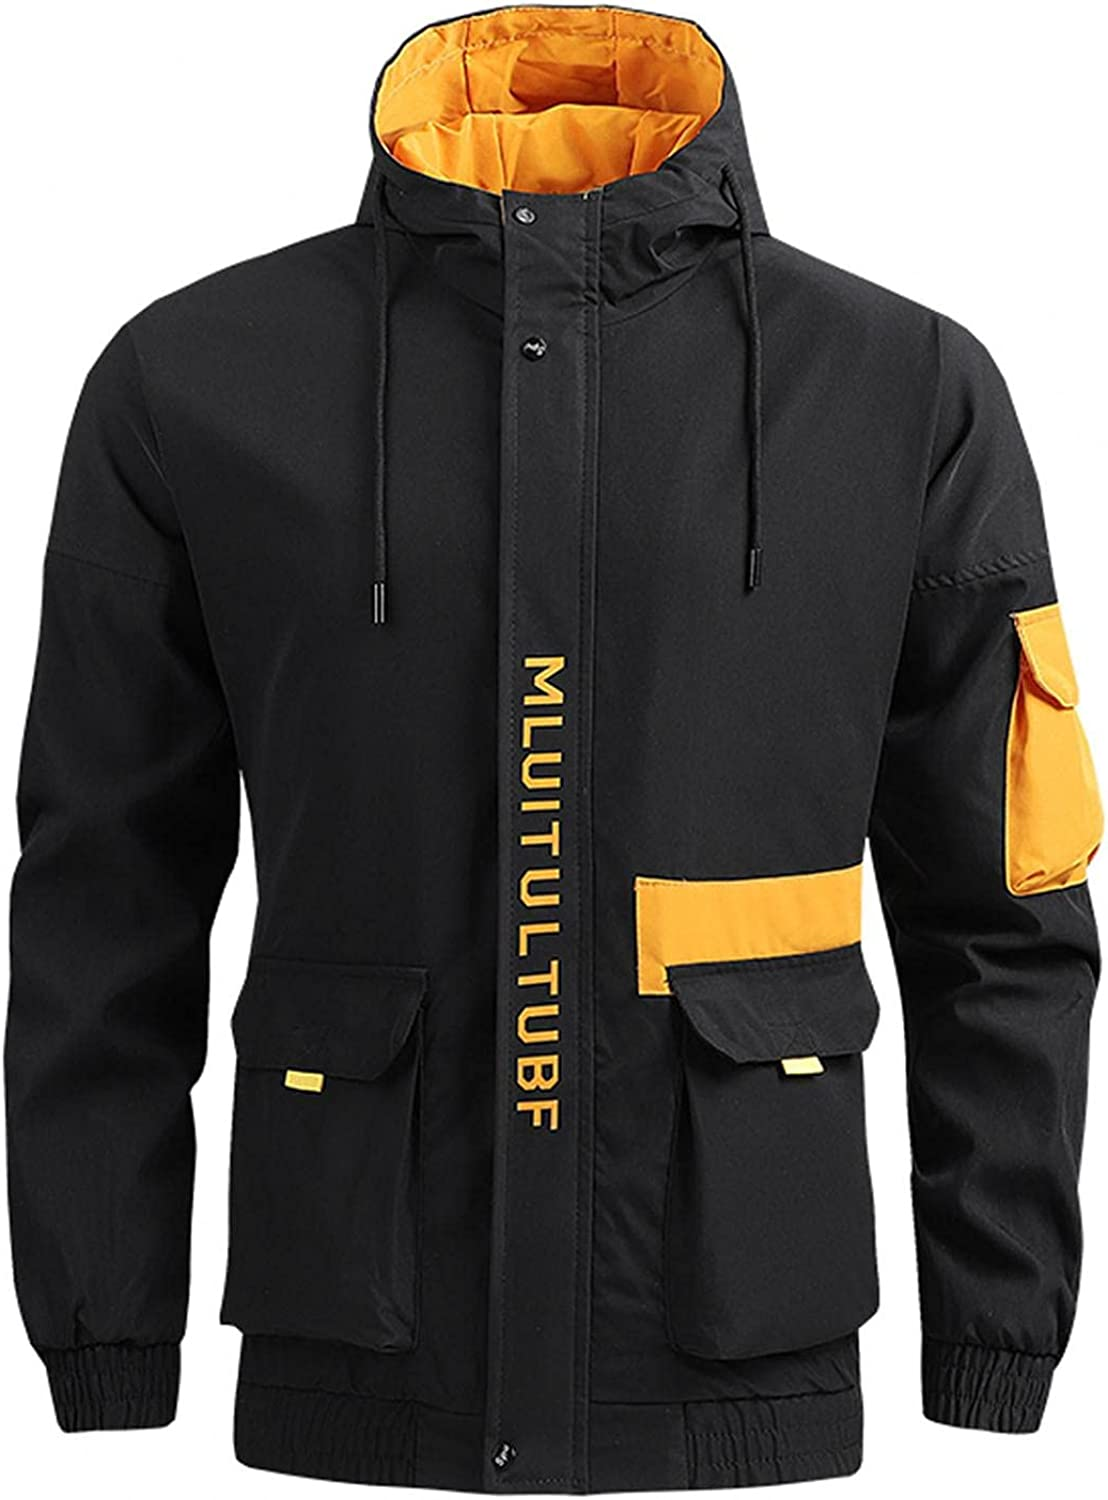 SUIQU Men's Casual Bomber Hooded Jackets Zipper Pocket Cargo Style Autumn & Winter Jacket Coat Blouse Top with Hood